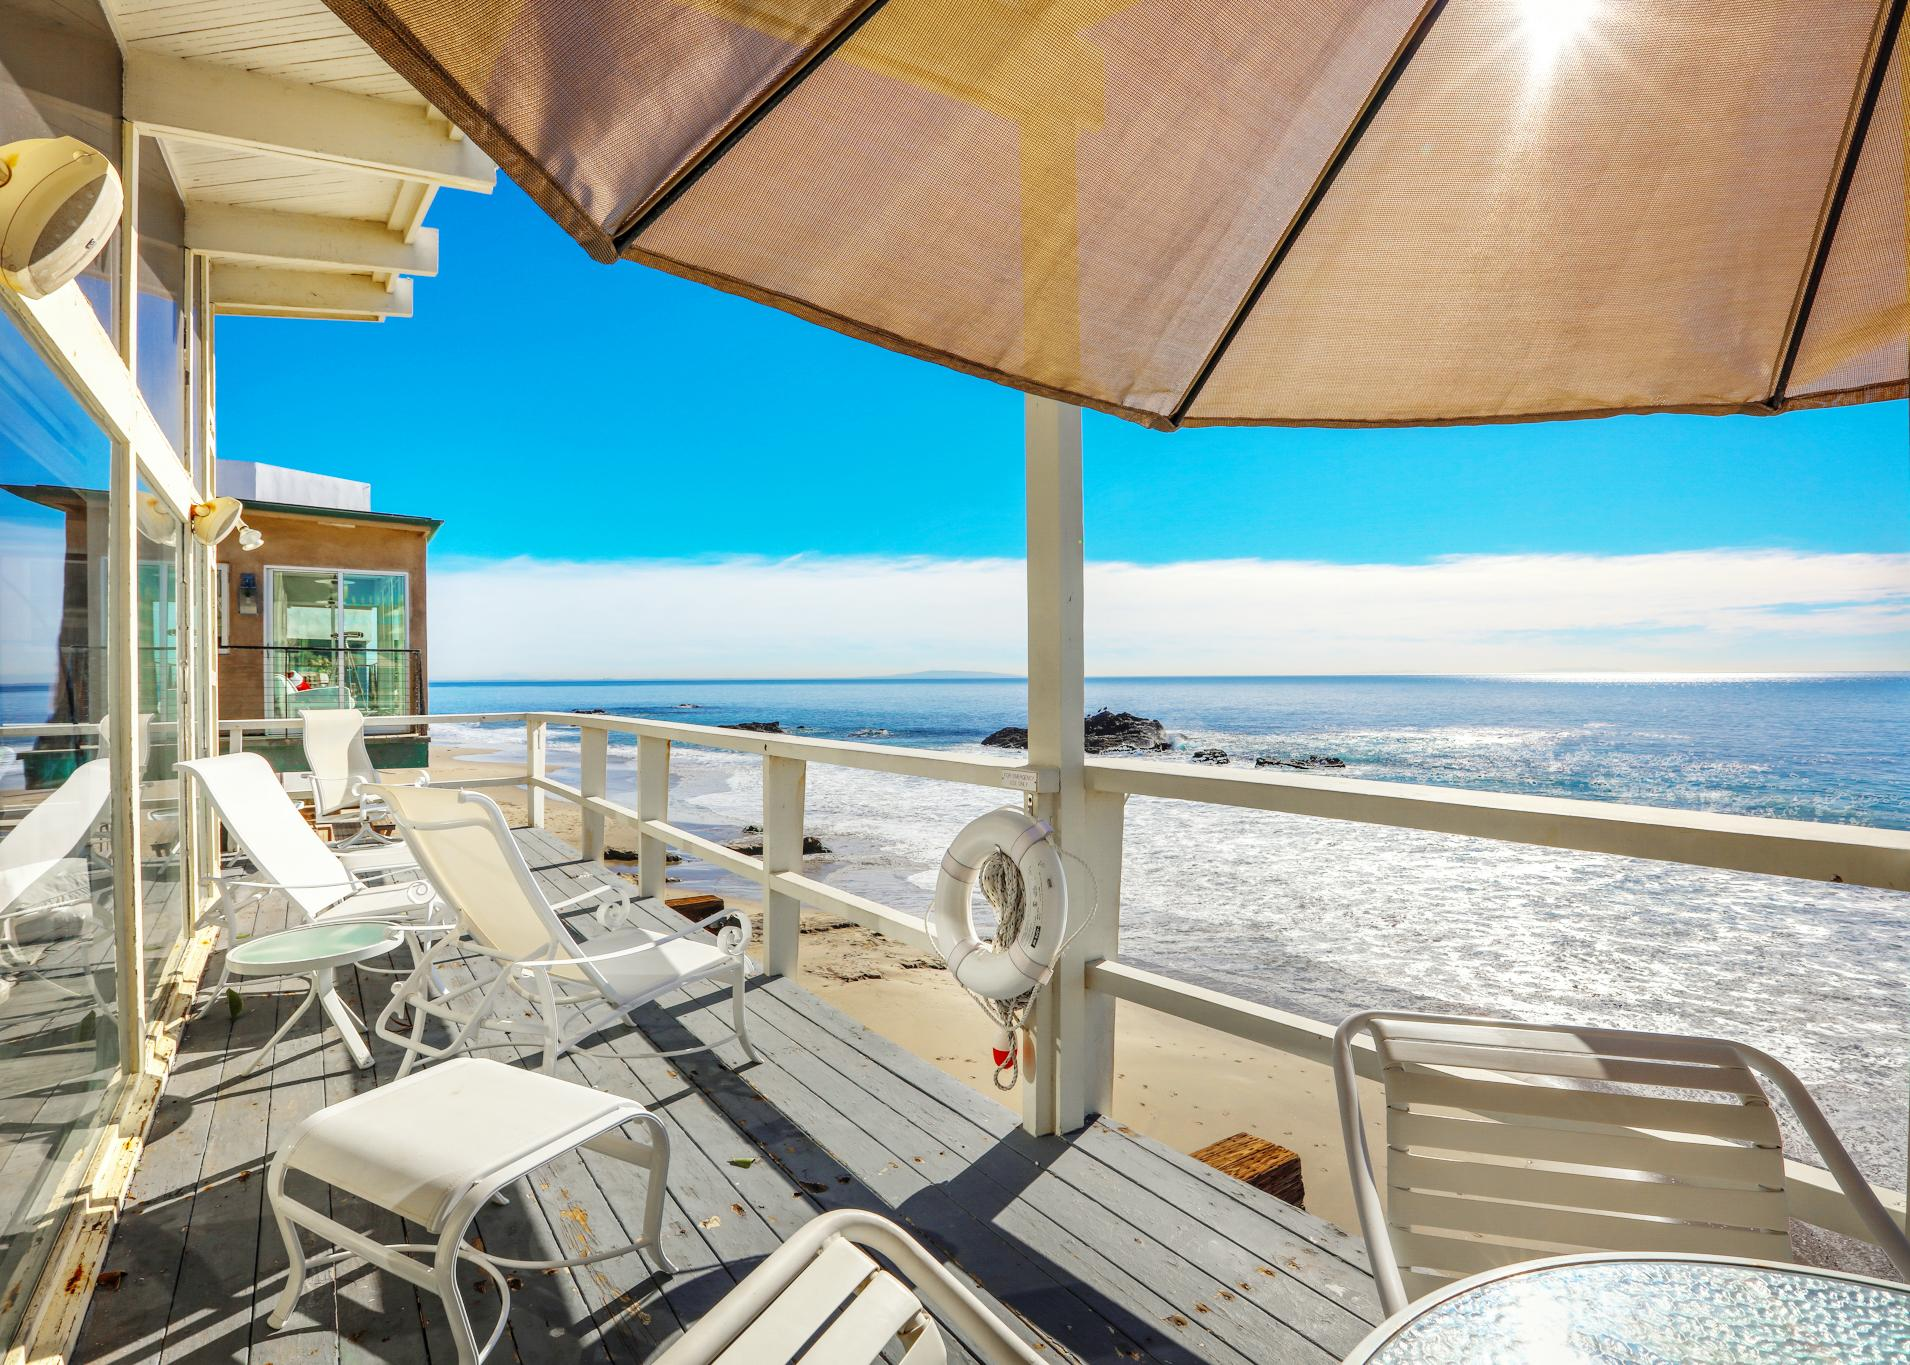 Property Image 1 - 2BR, 2BA Beachfront Home w/ Panoramic Ocean Views